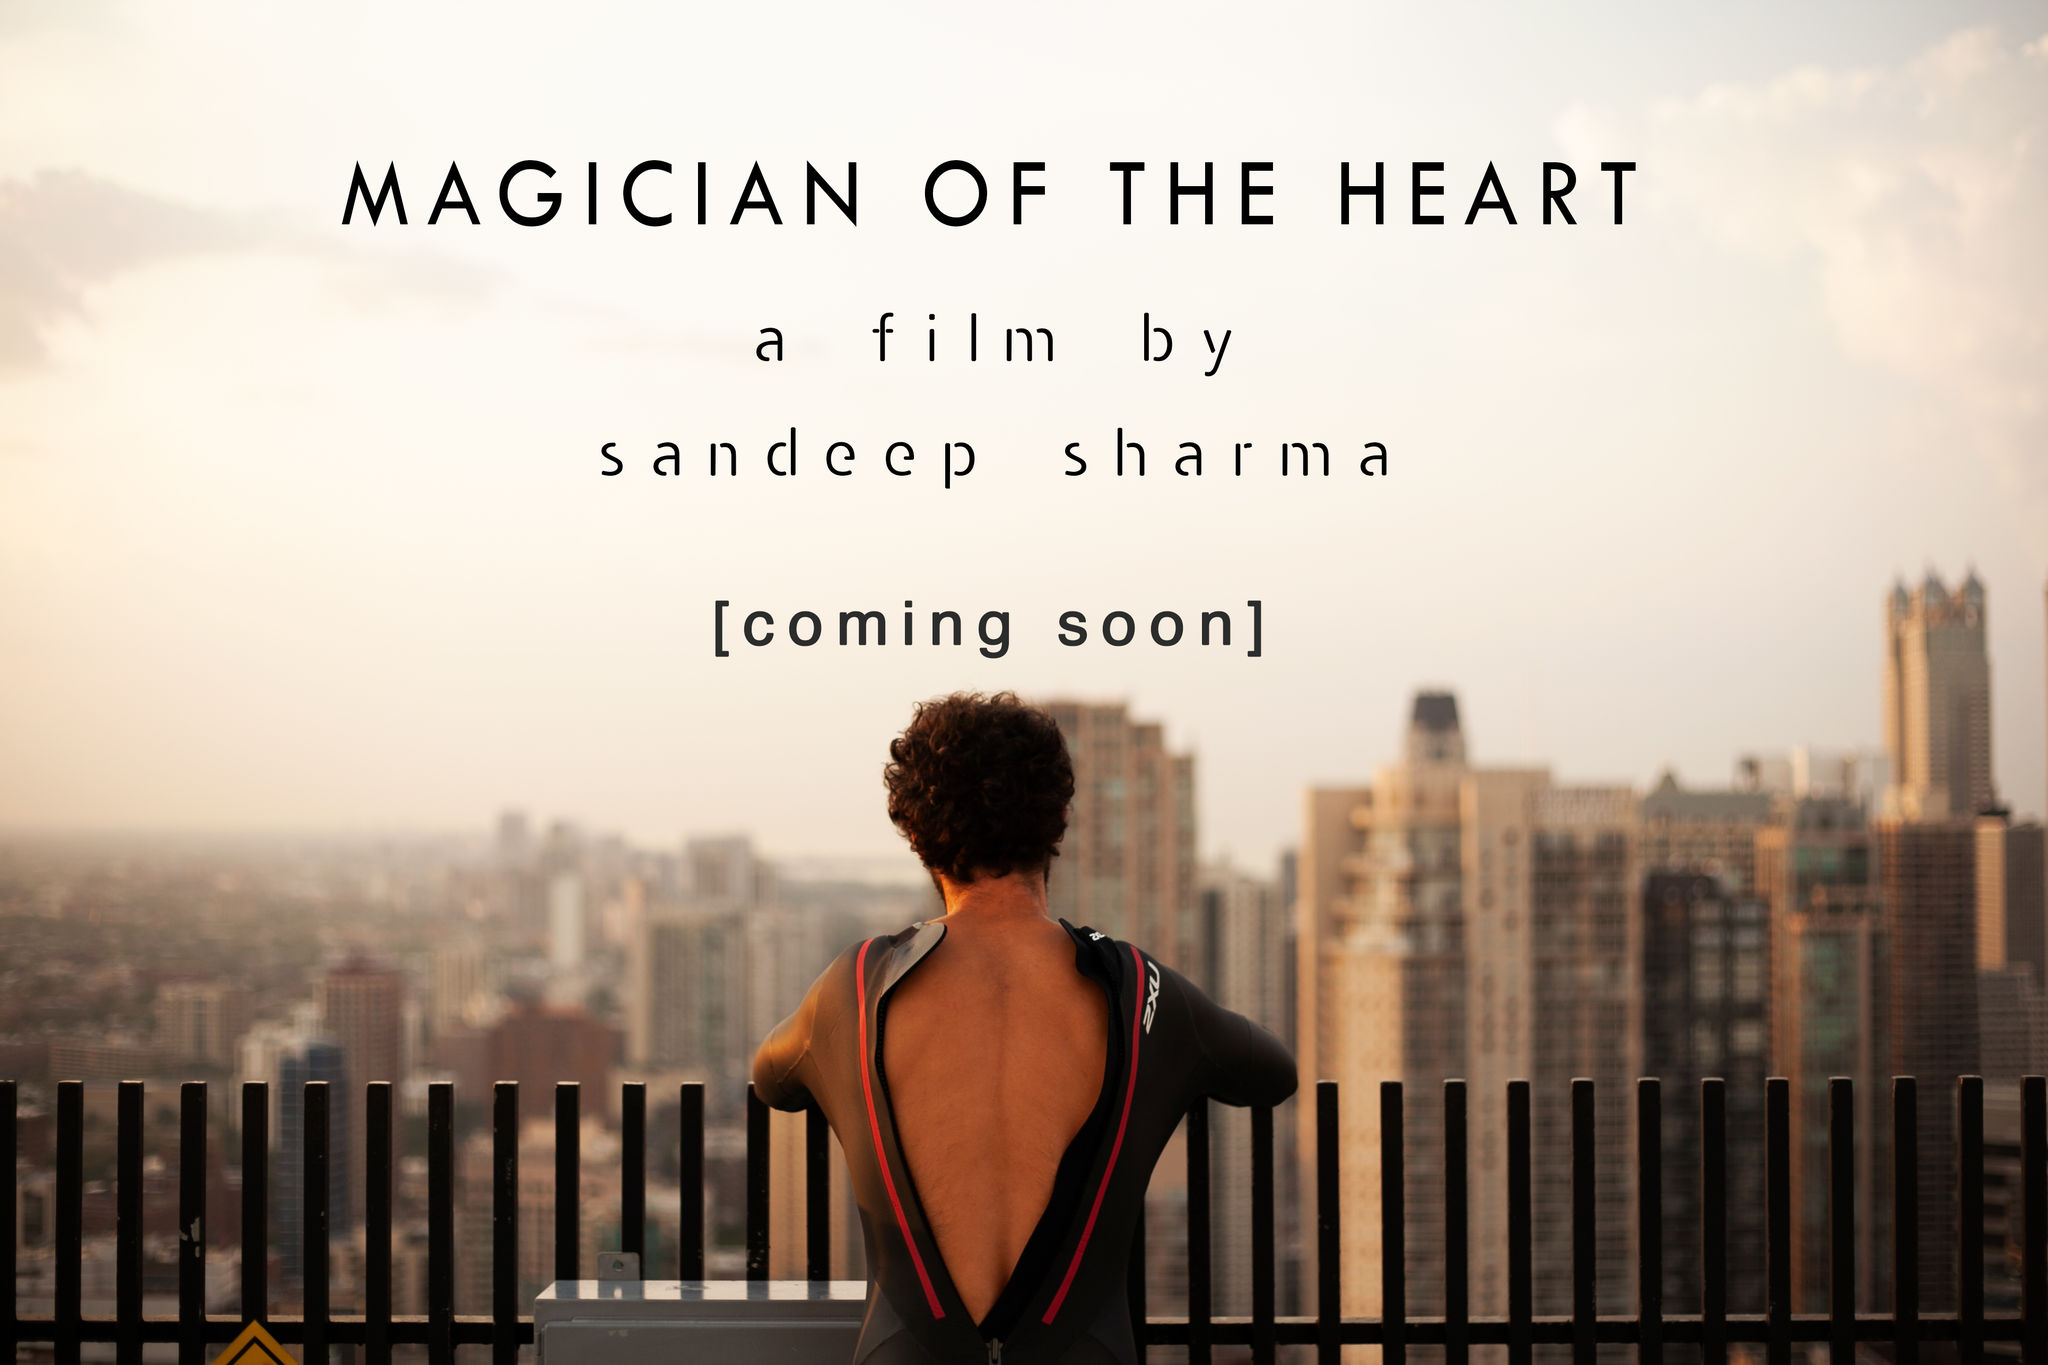 MAGICIAN OF THE HEART (trailer)